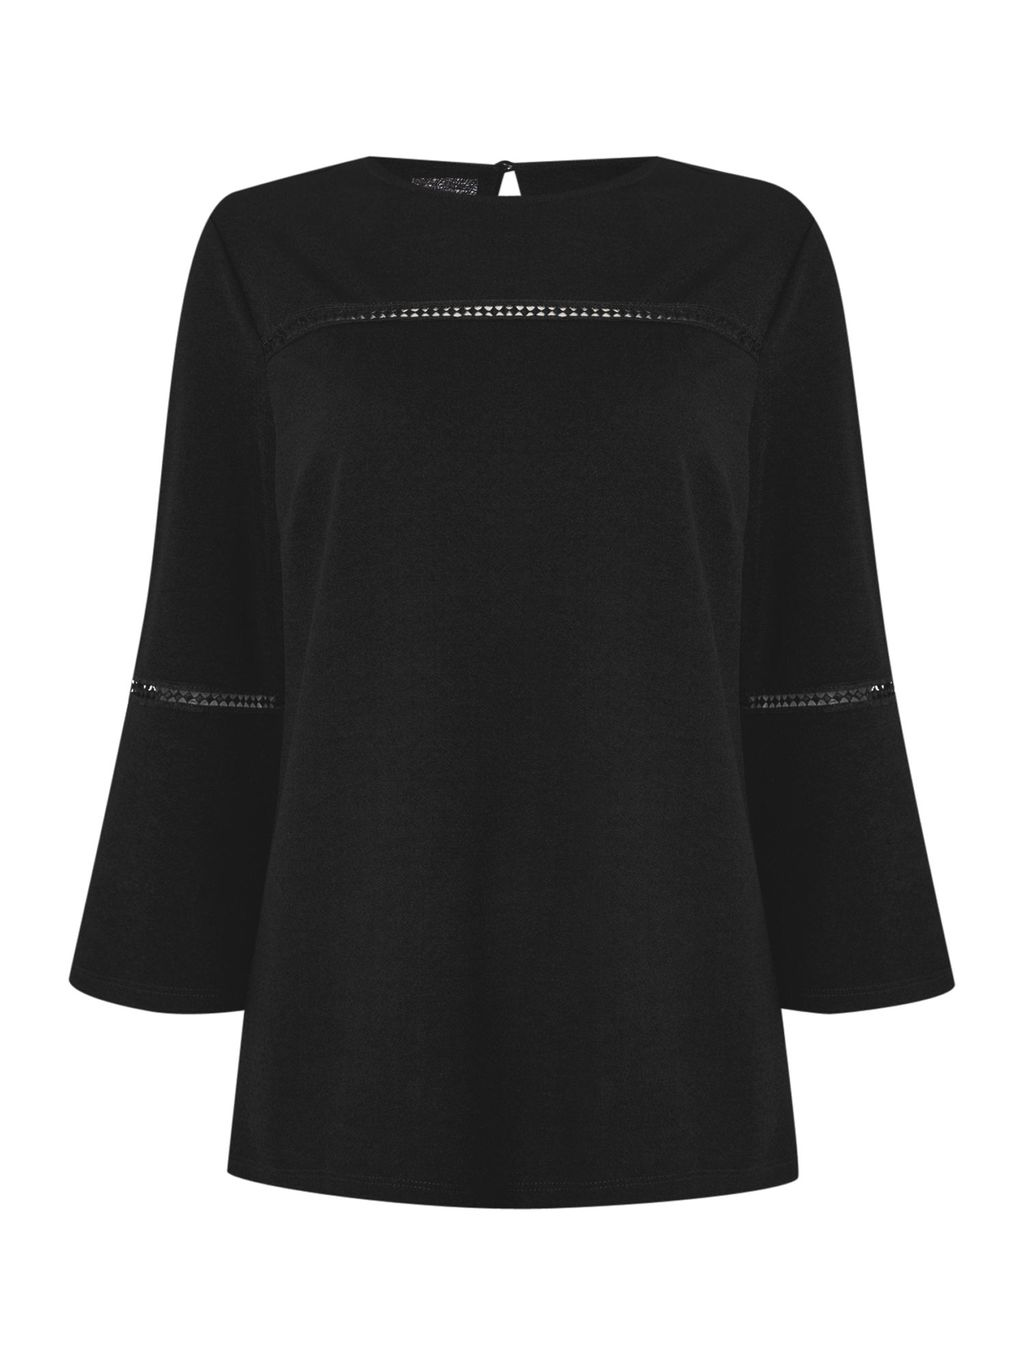 Libby Bell Sleeve Trim Detail Top, Black - neckline: round neck; pattern: plain; predominant colour: black; occasions: casual, creative work; length: standard; style: top; fibres: polyester/polyamide - 100%; fit: straight cut; sleeve length: 3/4 length; sleeve style: standard; texture group: sheer fabrics/chiffon/organza etc.; pattern type: fabric; season: s/s 2016